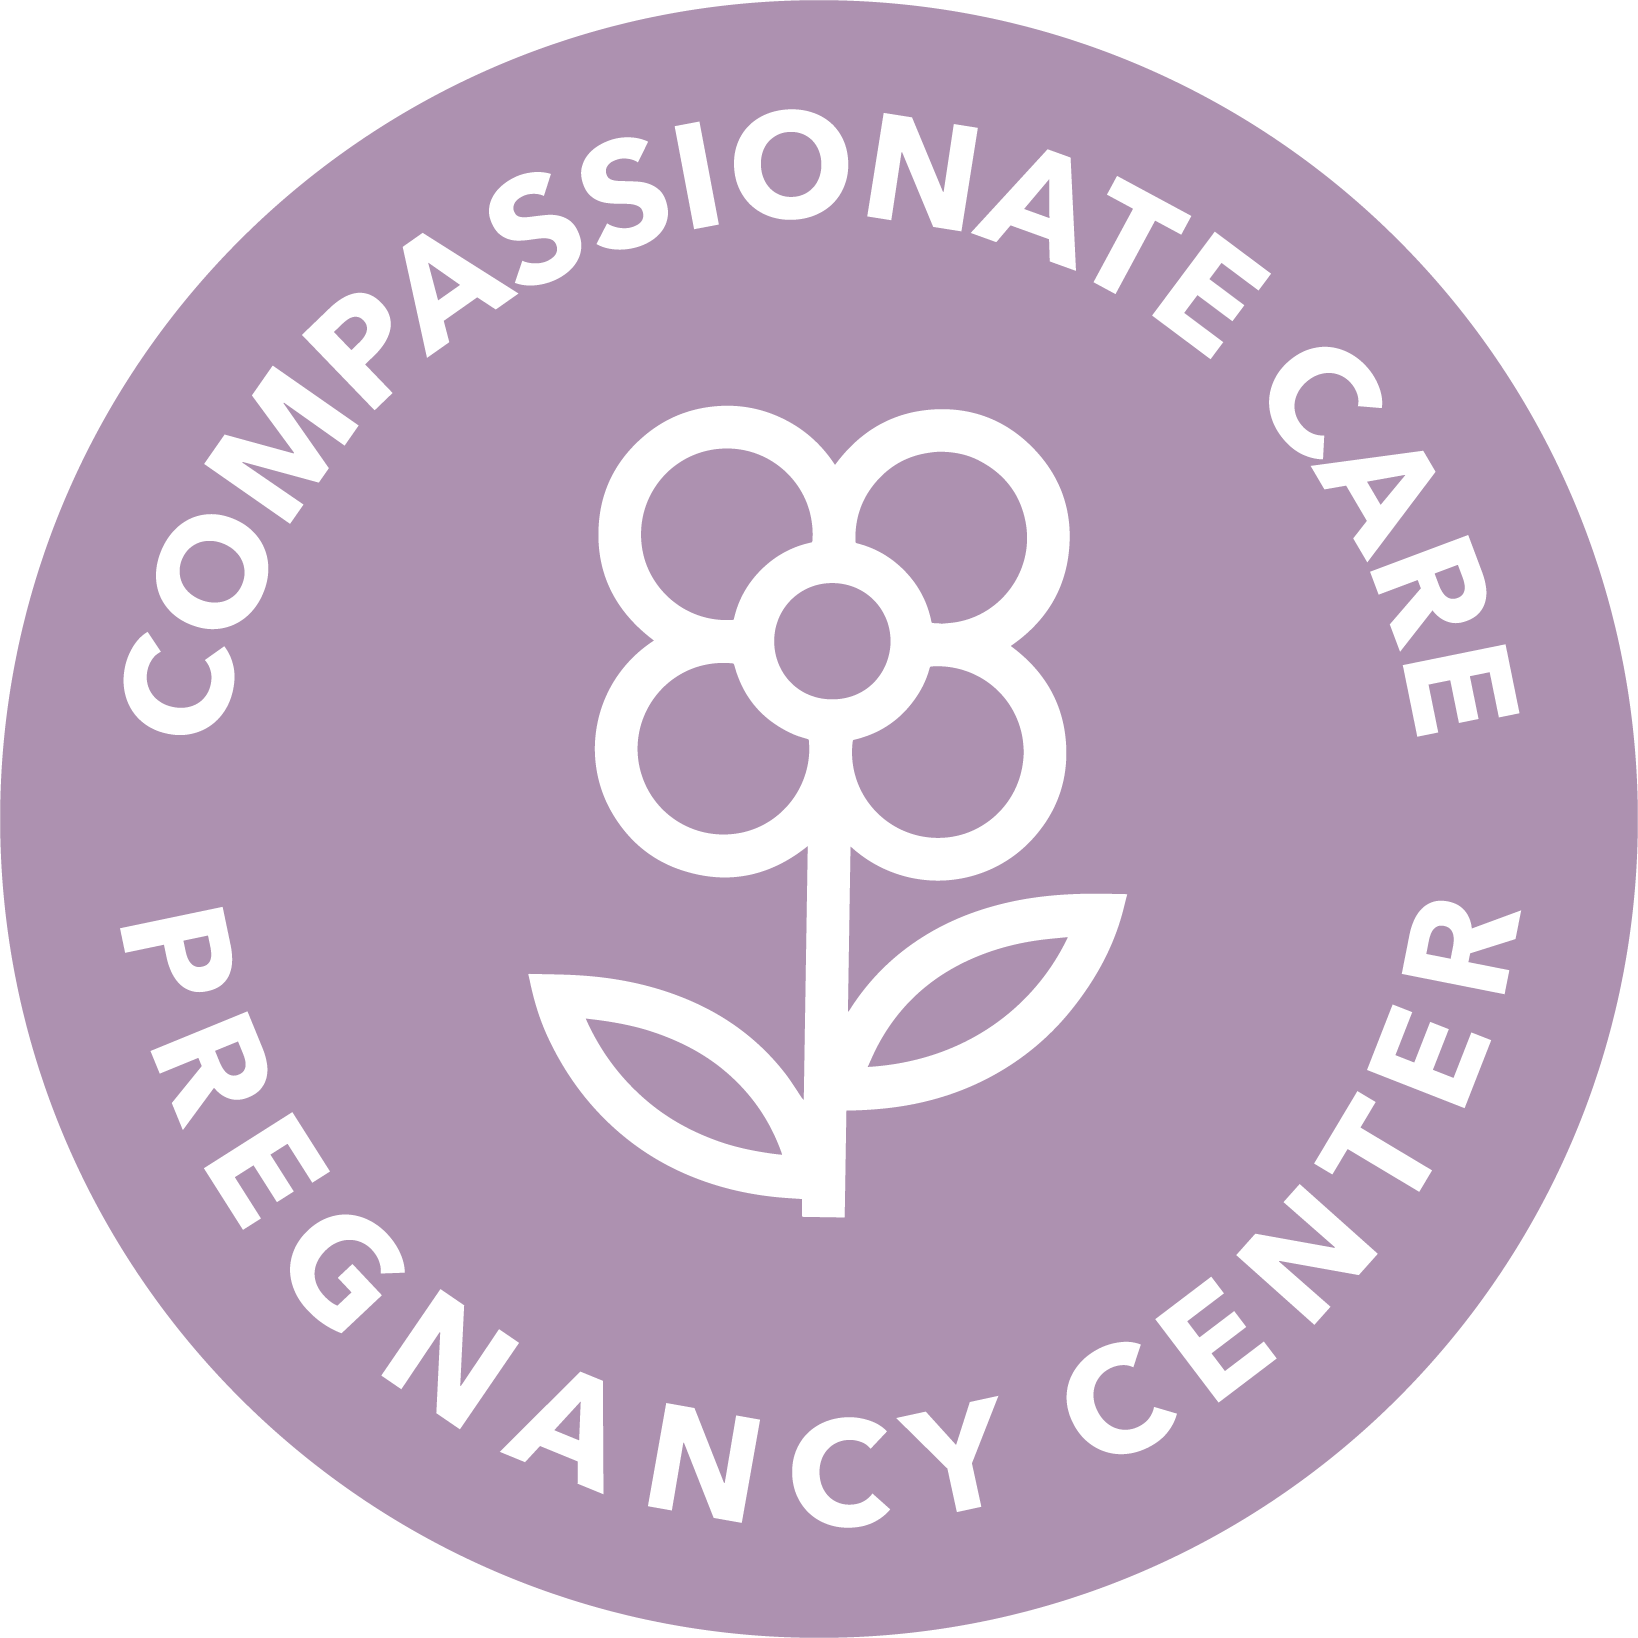 Compassionate Care Pregnancy Center in Plainview, TX